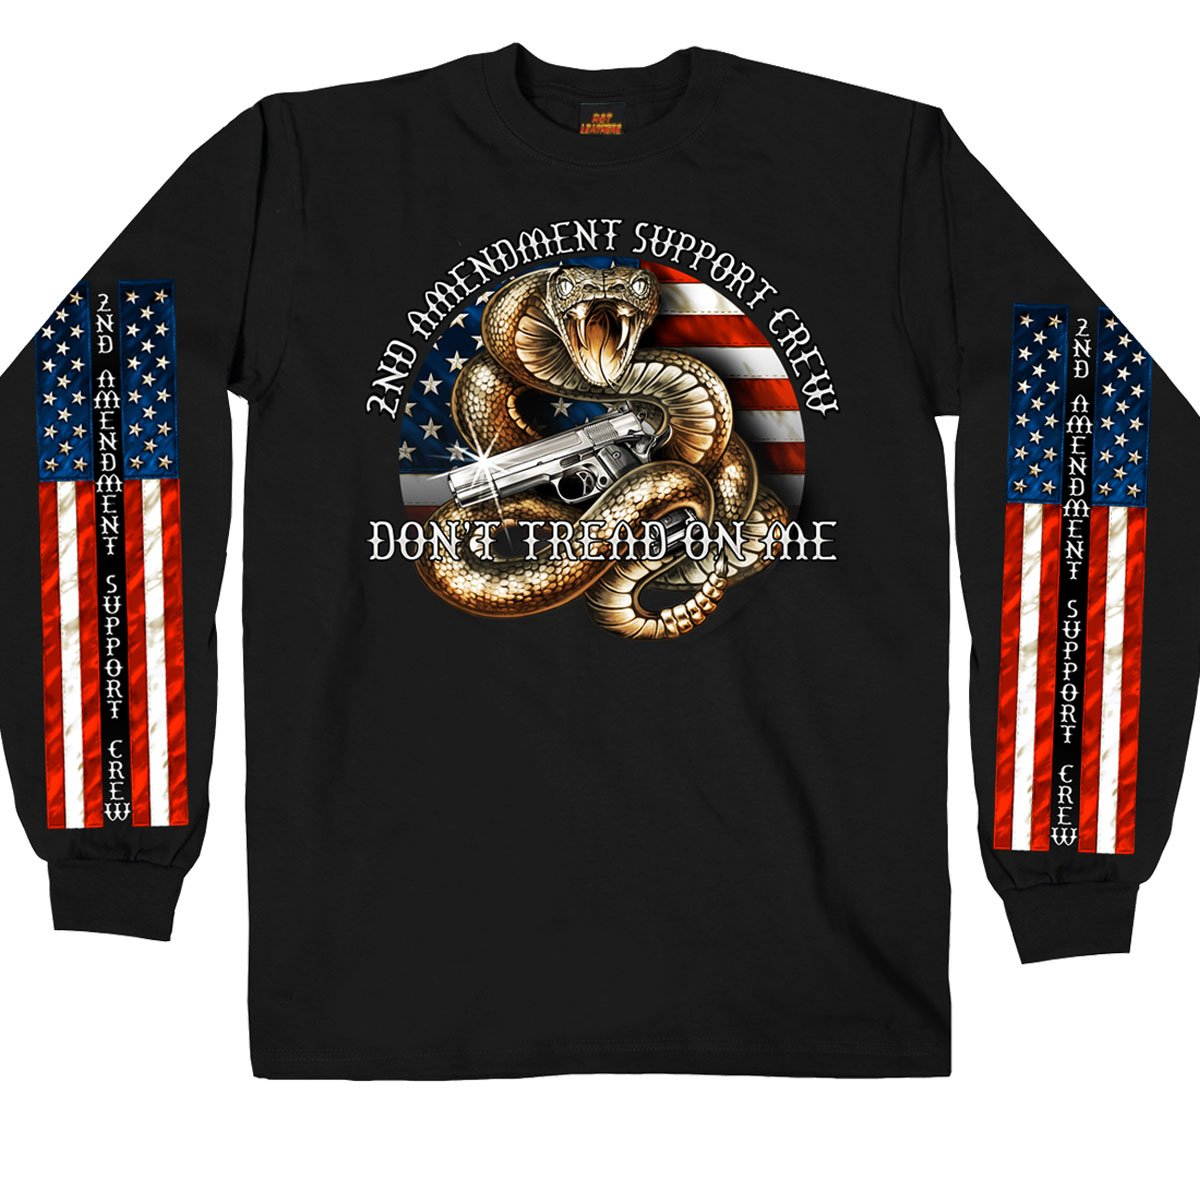 Hot Leathers Men's Long Sleeve 2nd Amendment Shirt (Black, XXX-Large)